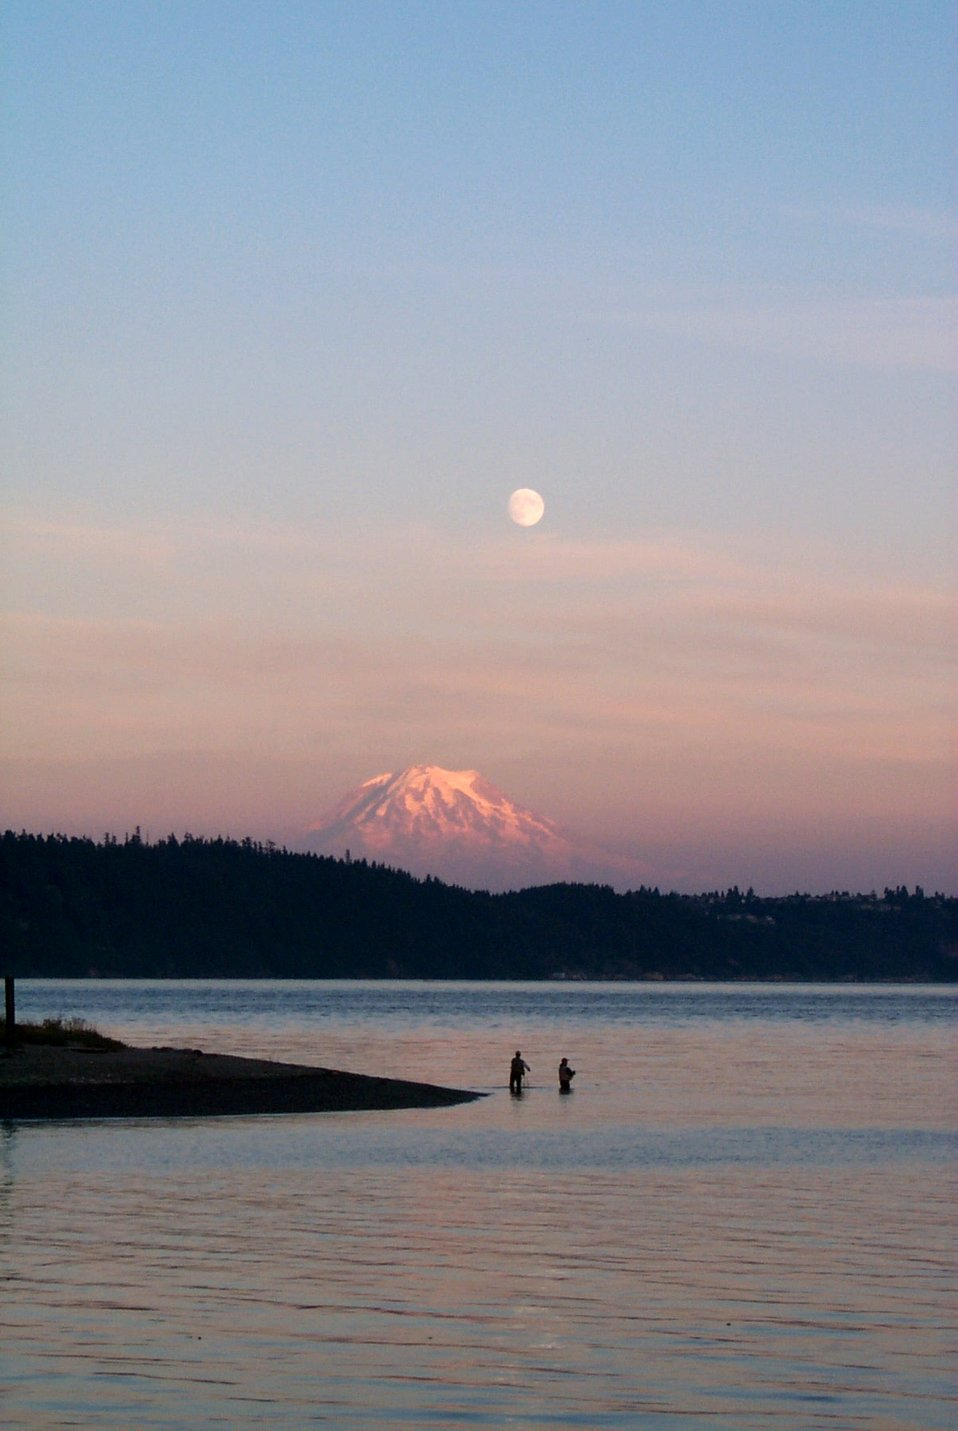 Fisherman's dream - sunset, moonrise, Mt. Rainier, and the salmon were running.